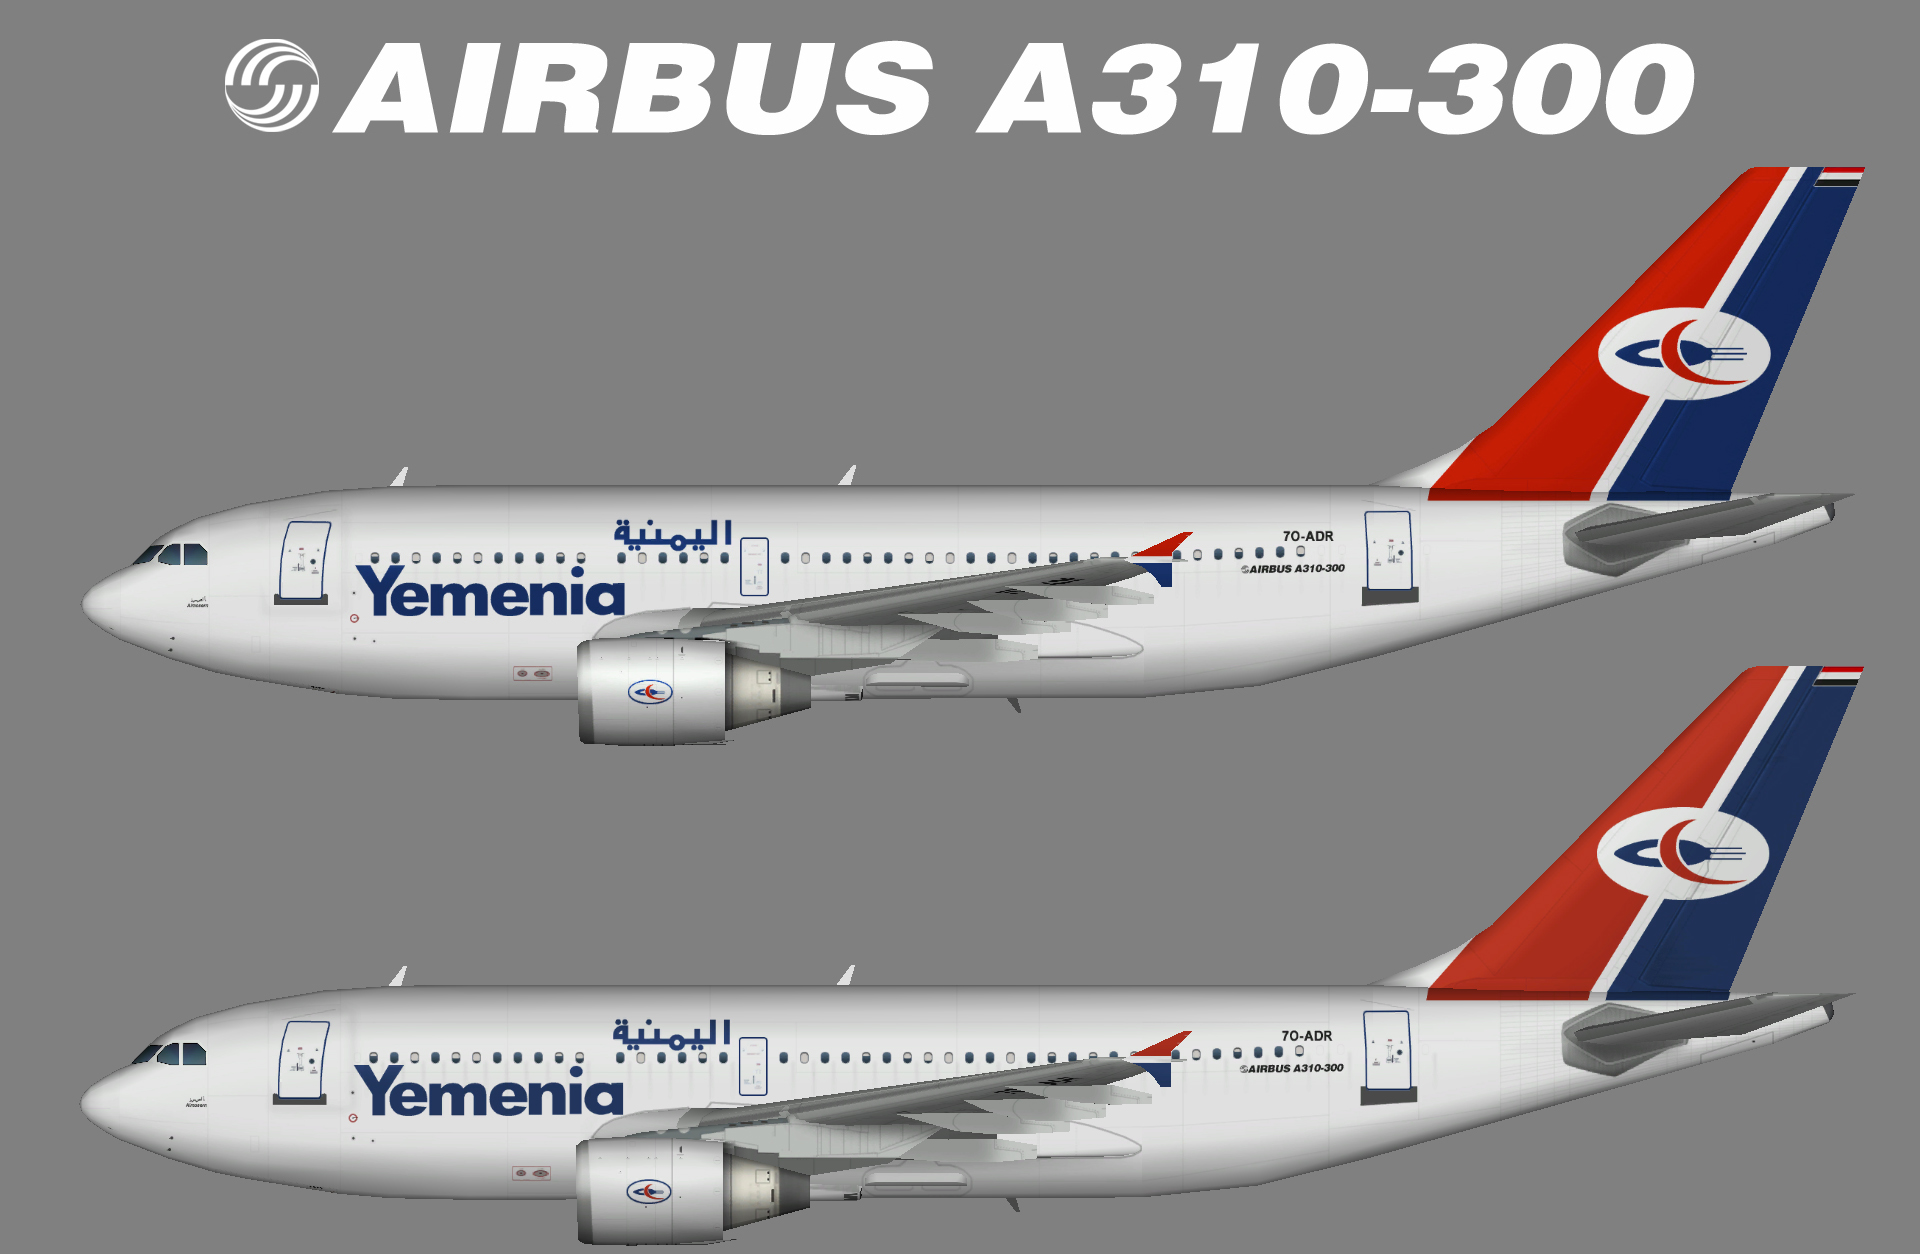 Wilco 737 fs9 update download websites - atflintblogspot